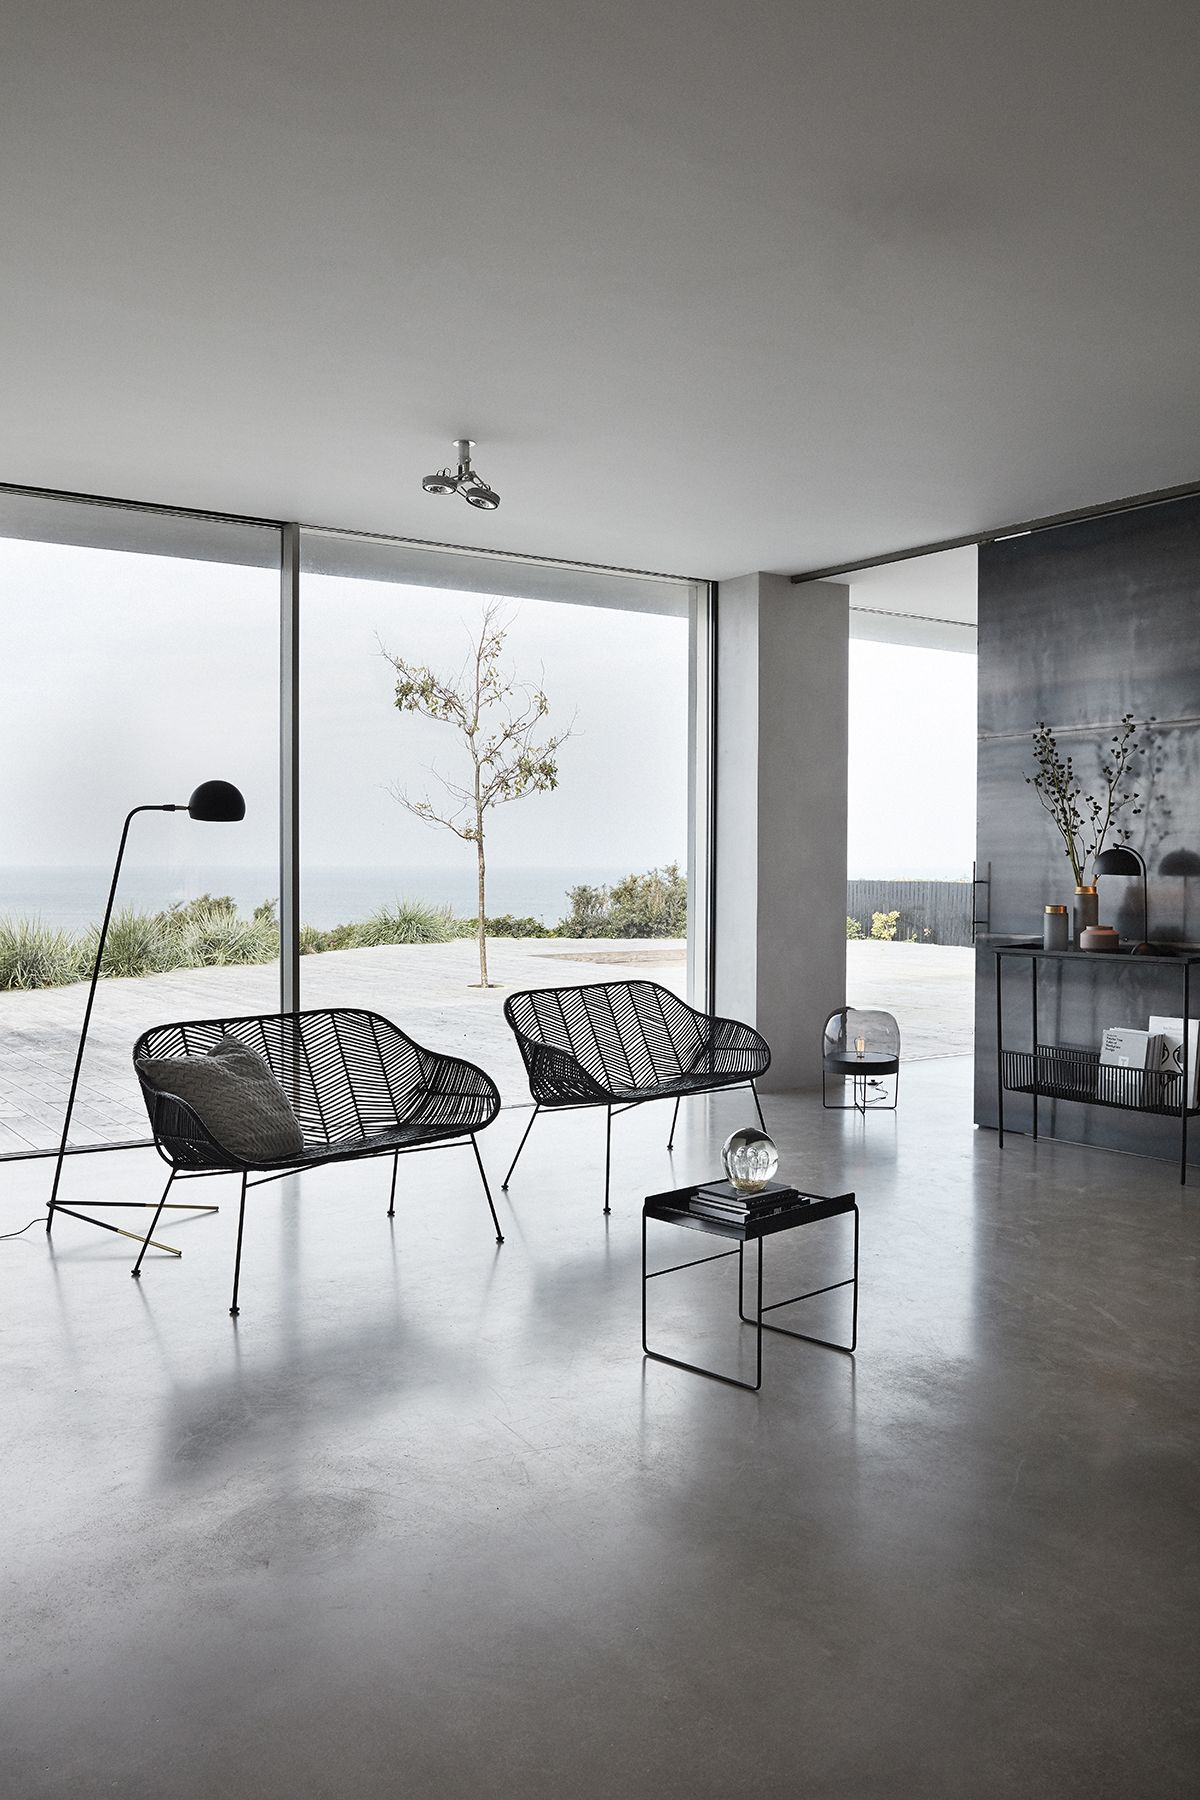 Home Decor Ideas With Danish Interior Design And Styling For Your Living Room. (med Billeder